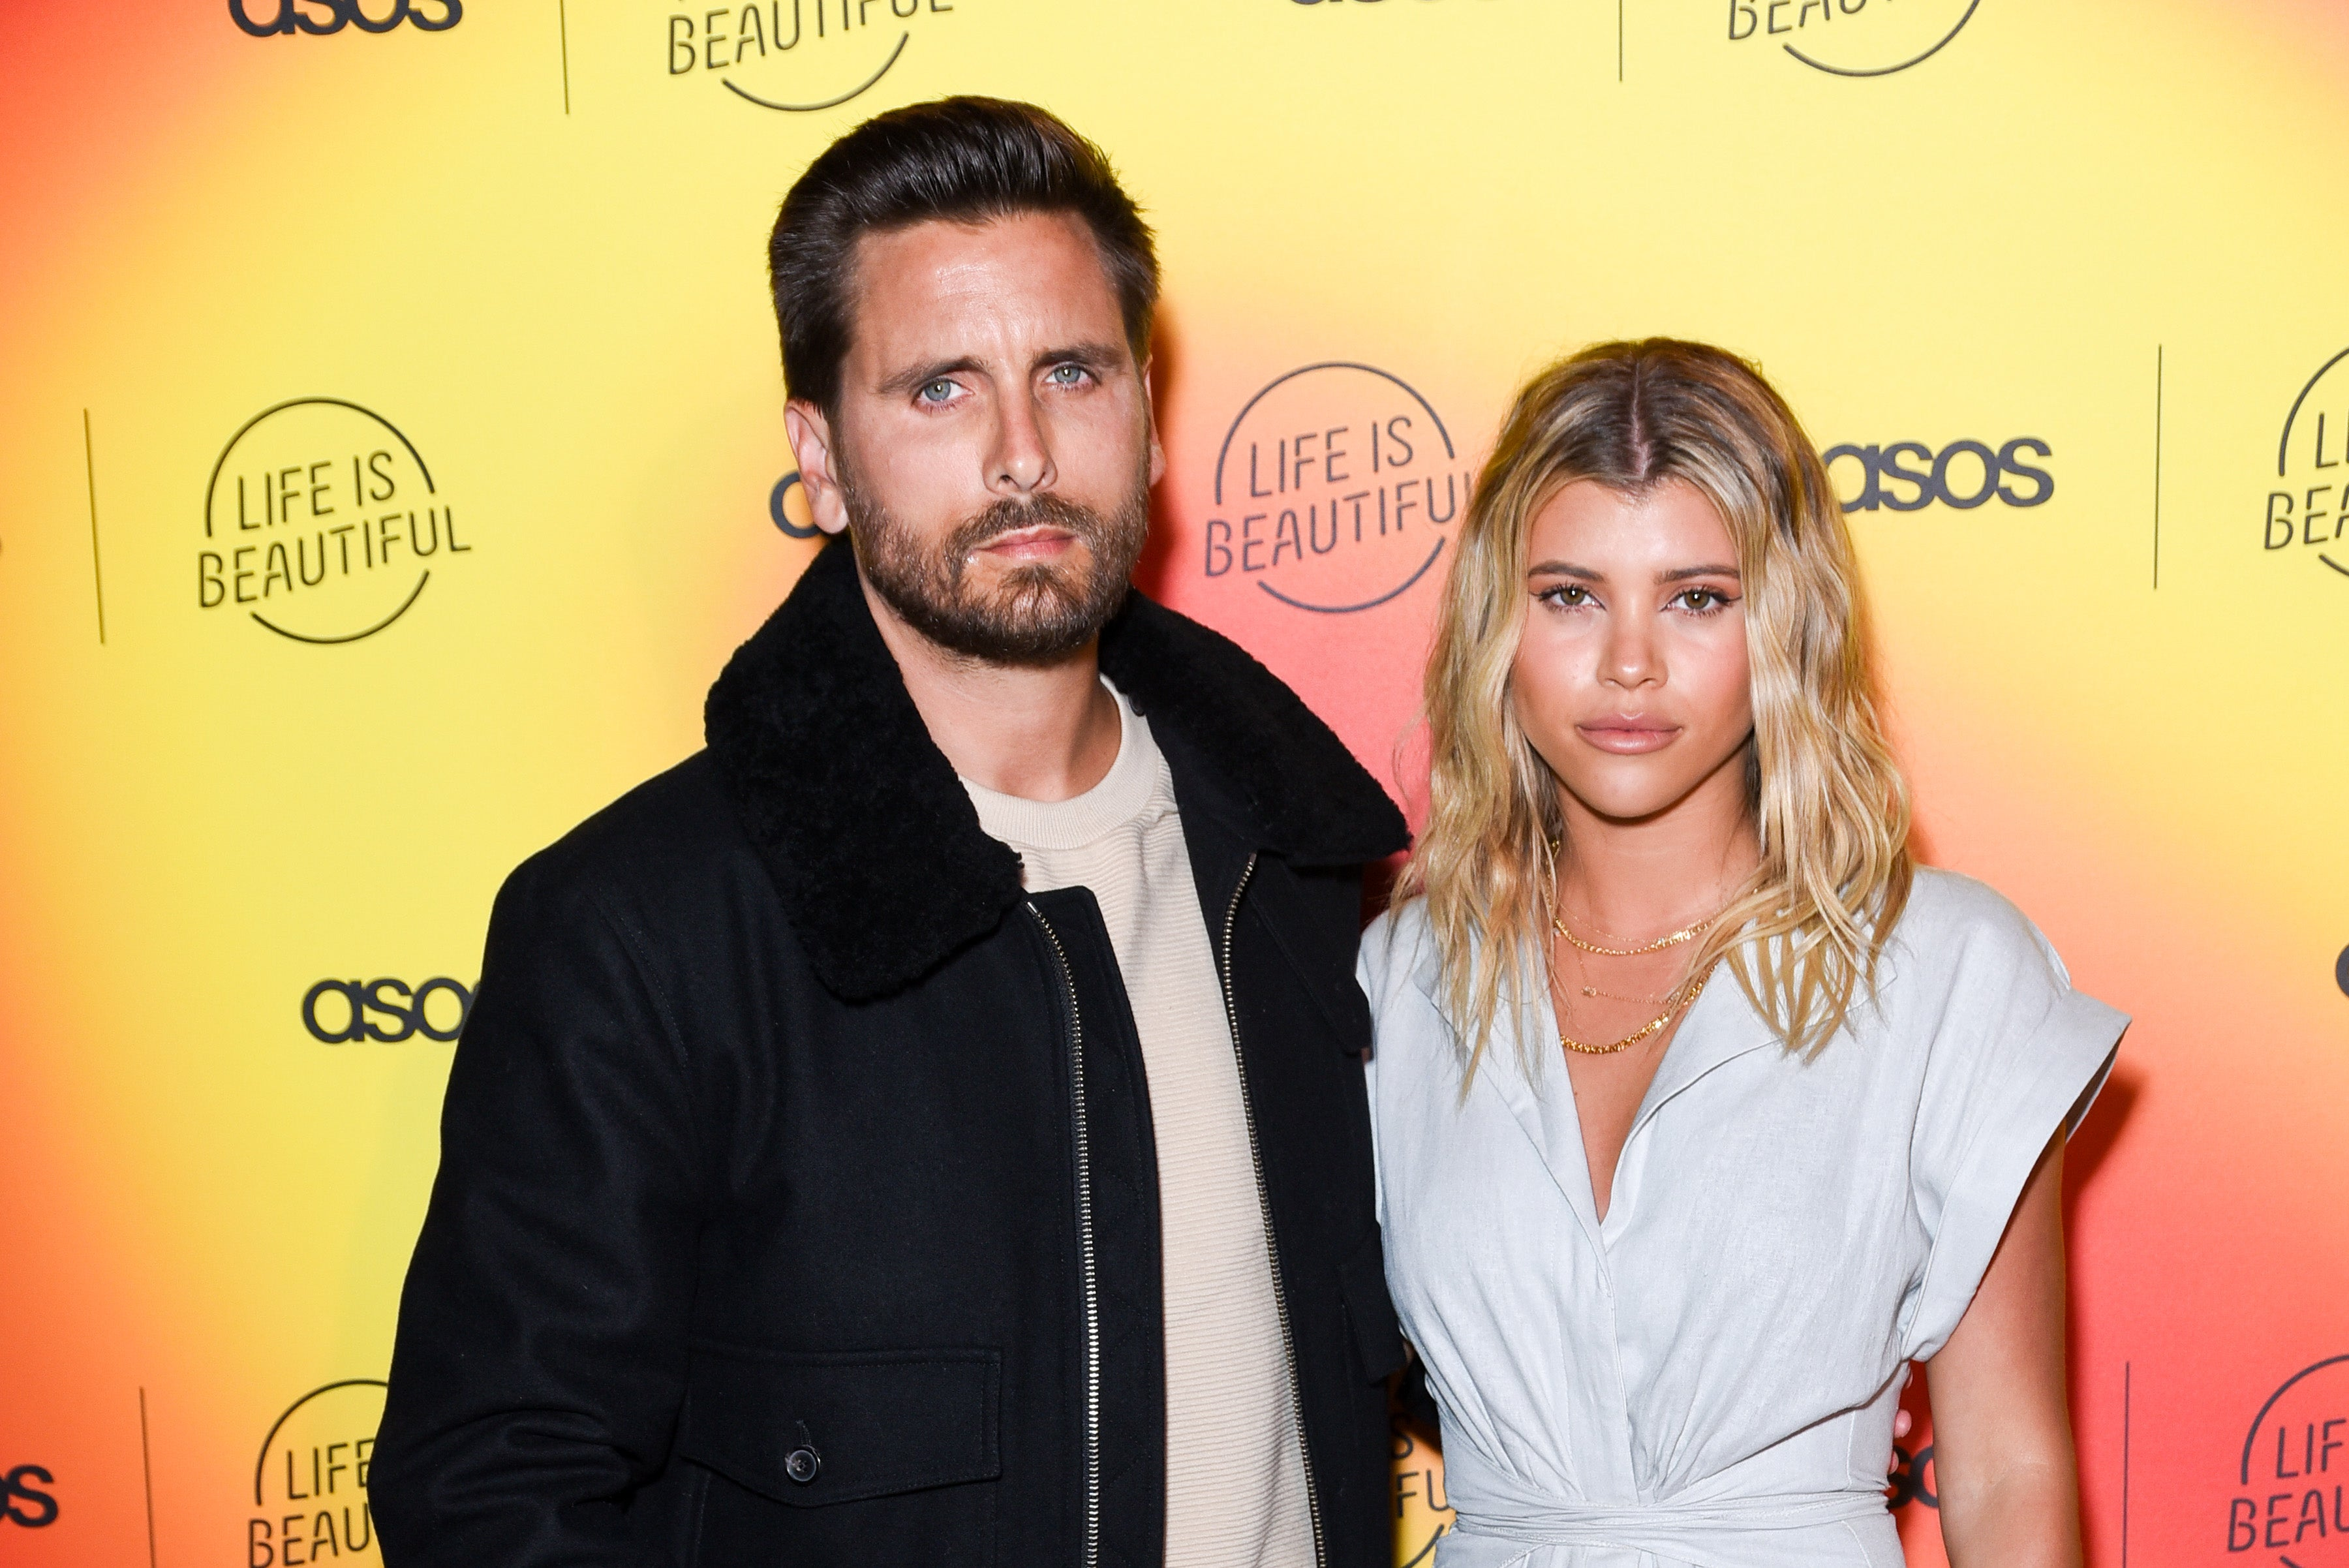 Scott Disick and Sofia Richie Look Into Buying a $20 Million House Together